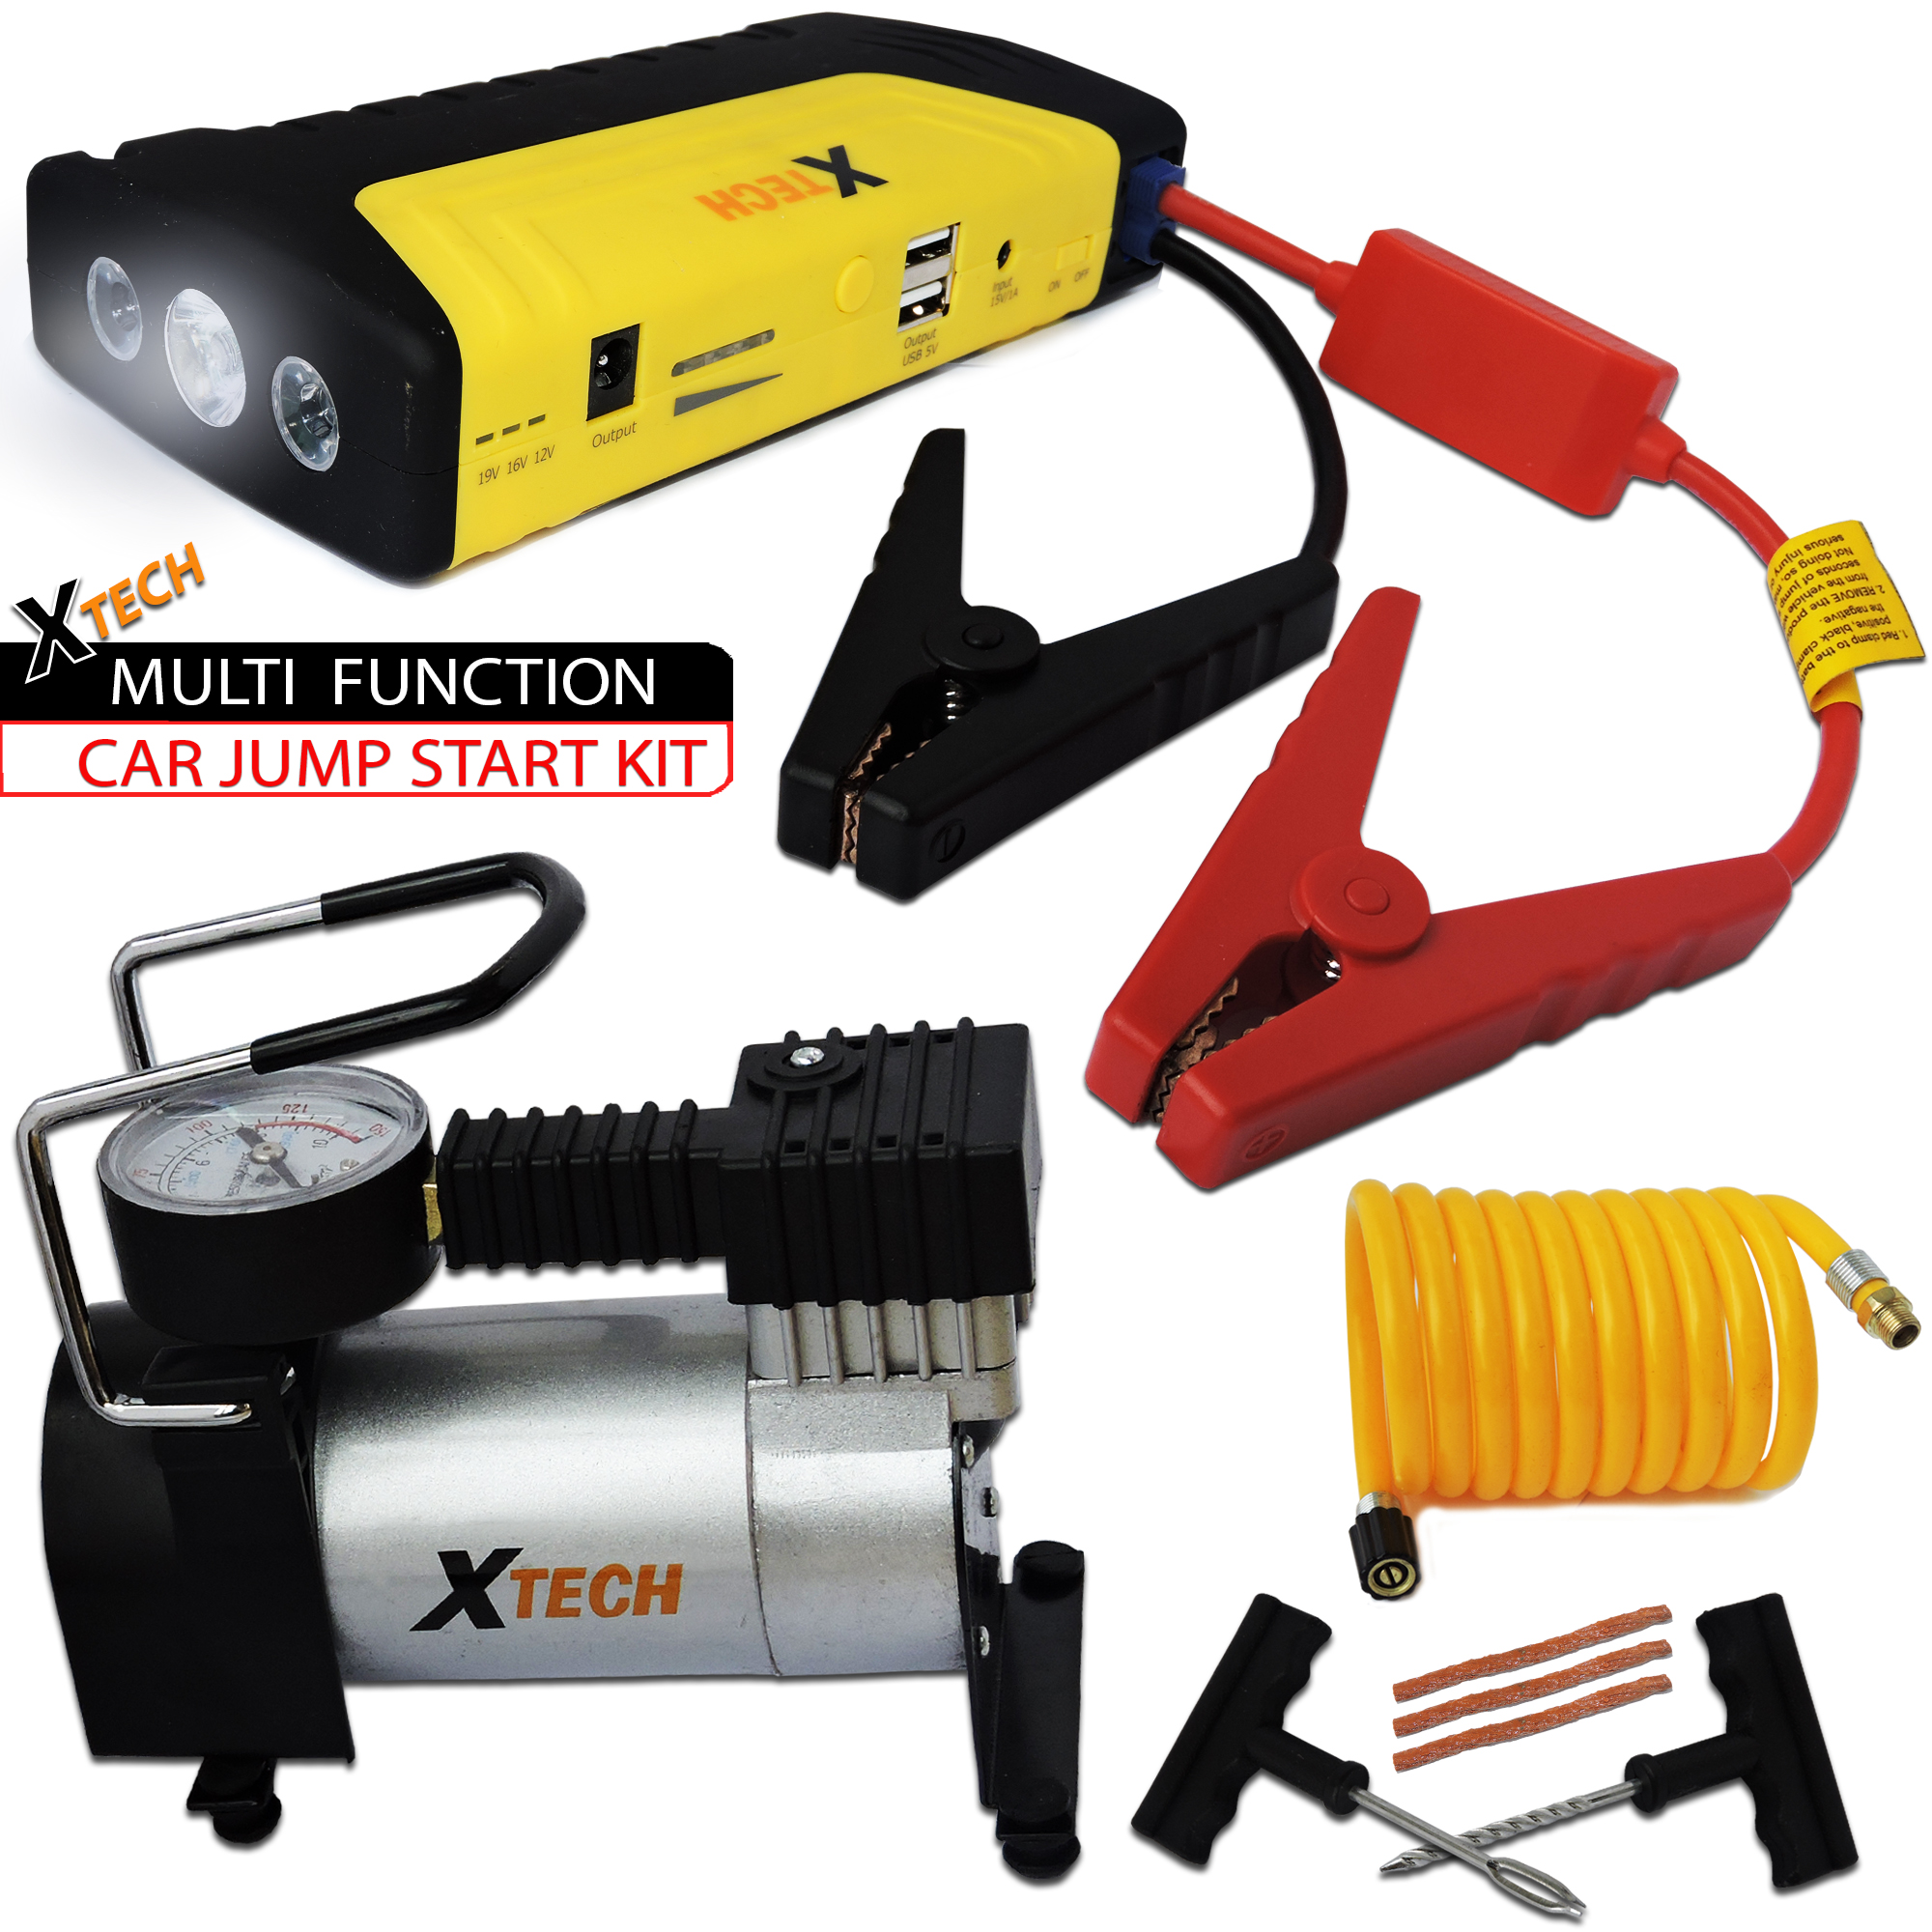 Xtech Multi Function Car JUMP STARTER 20000mAh Emergency KIT with a Portable POWER BANK + Portable Air Pump + Tire Repair Kit designed f/ Cars, Pickup Trucks, Boats SUV's & all Motor Operated Vehicles Car JUMP STARTER / Power Bank